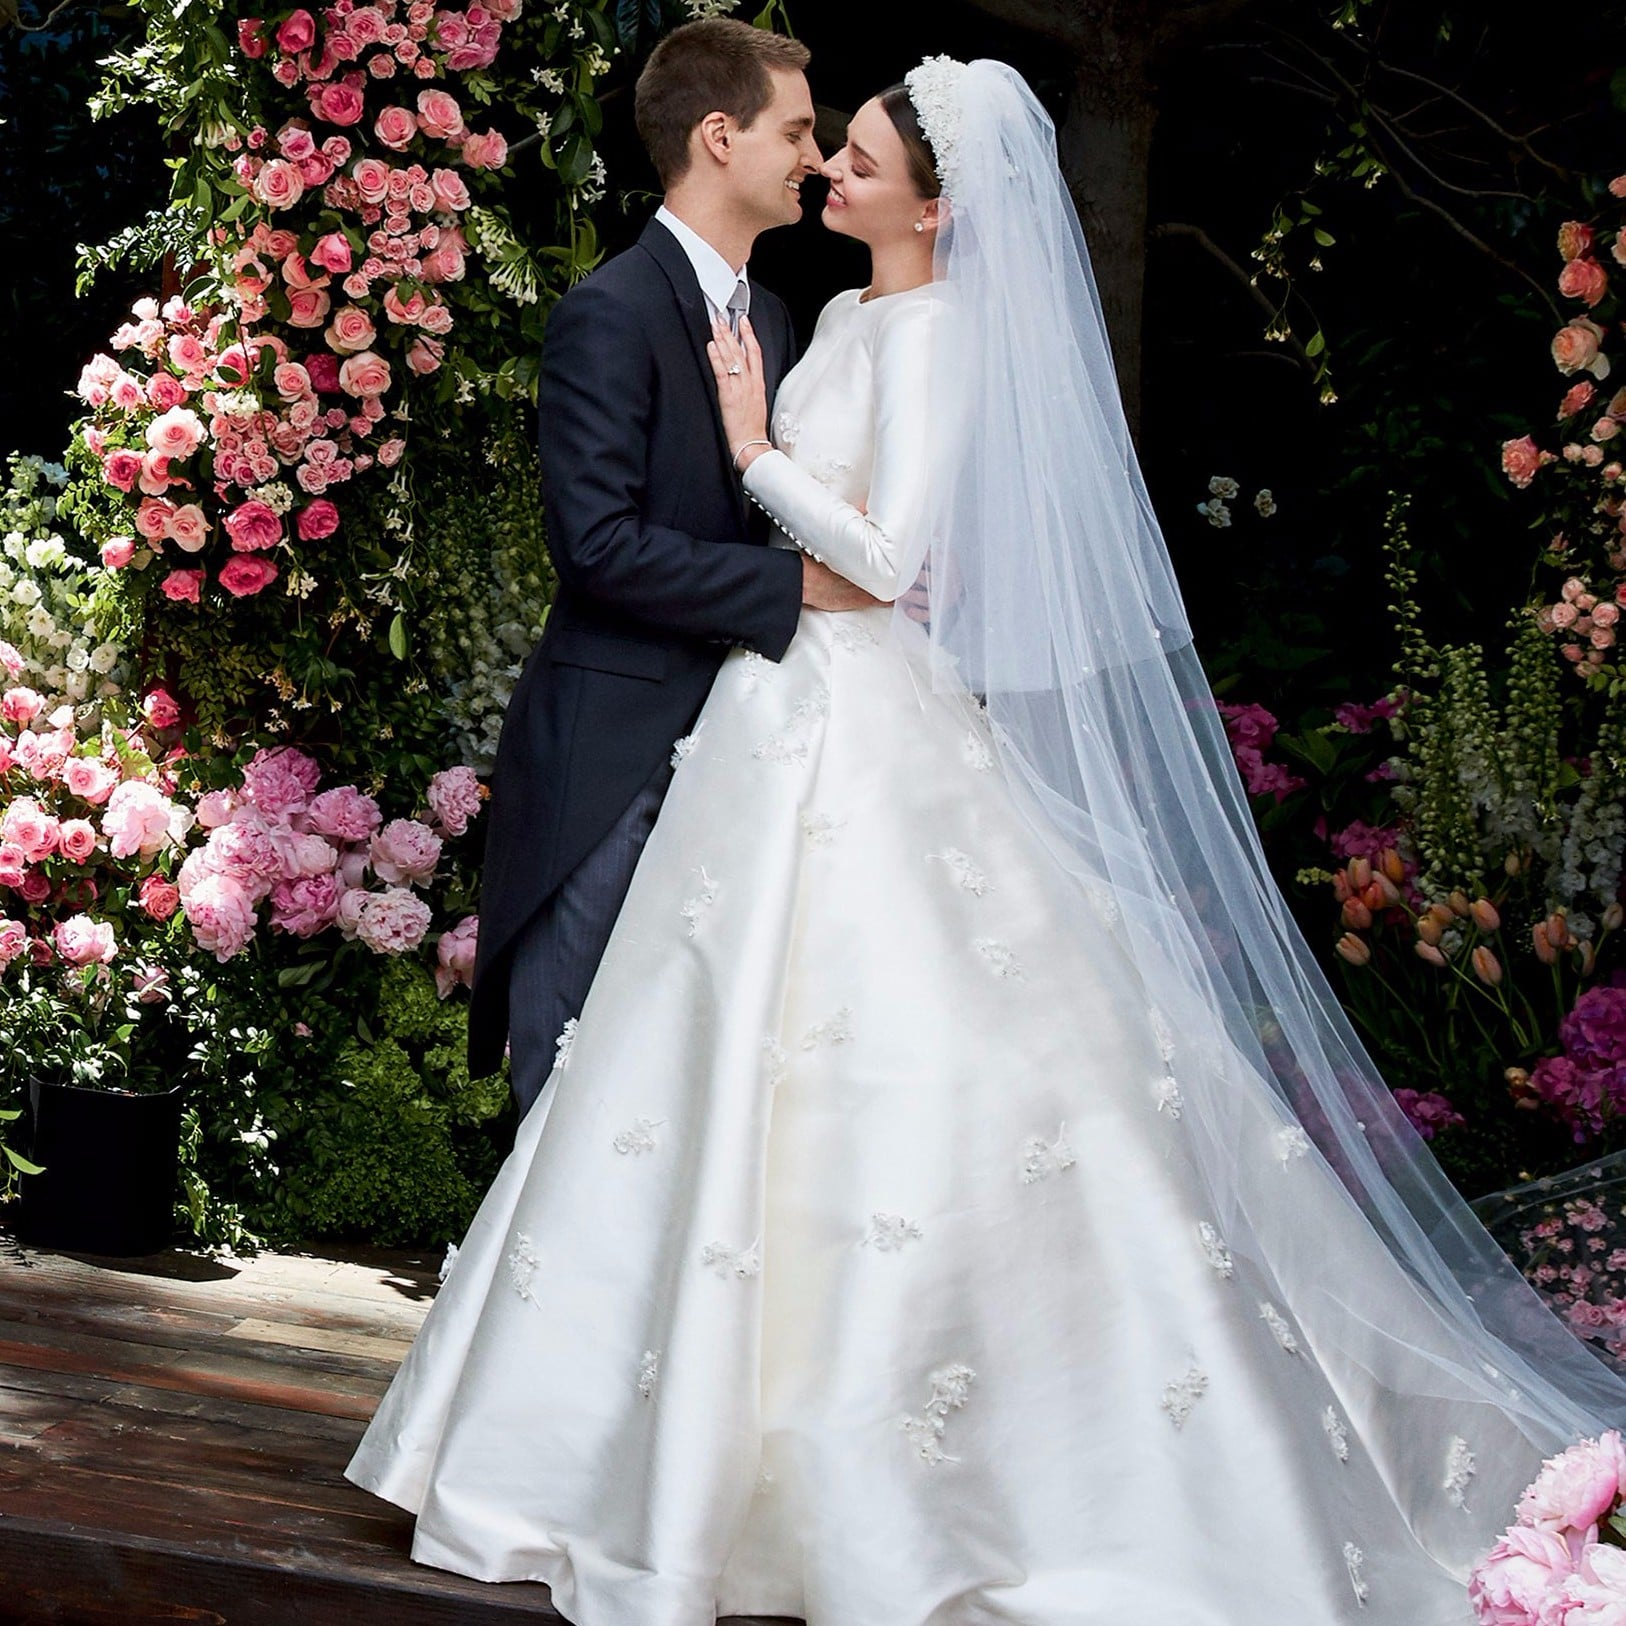 Miranda Kerr Wedding Dress.Miranda Kerr Wedding Pictures Popsugar Celebrity